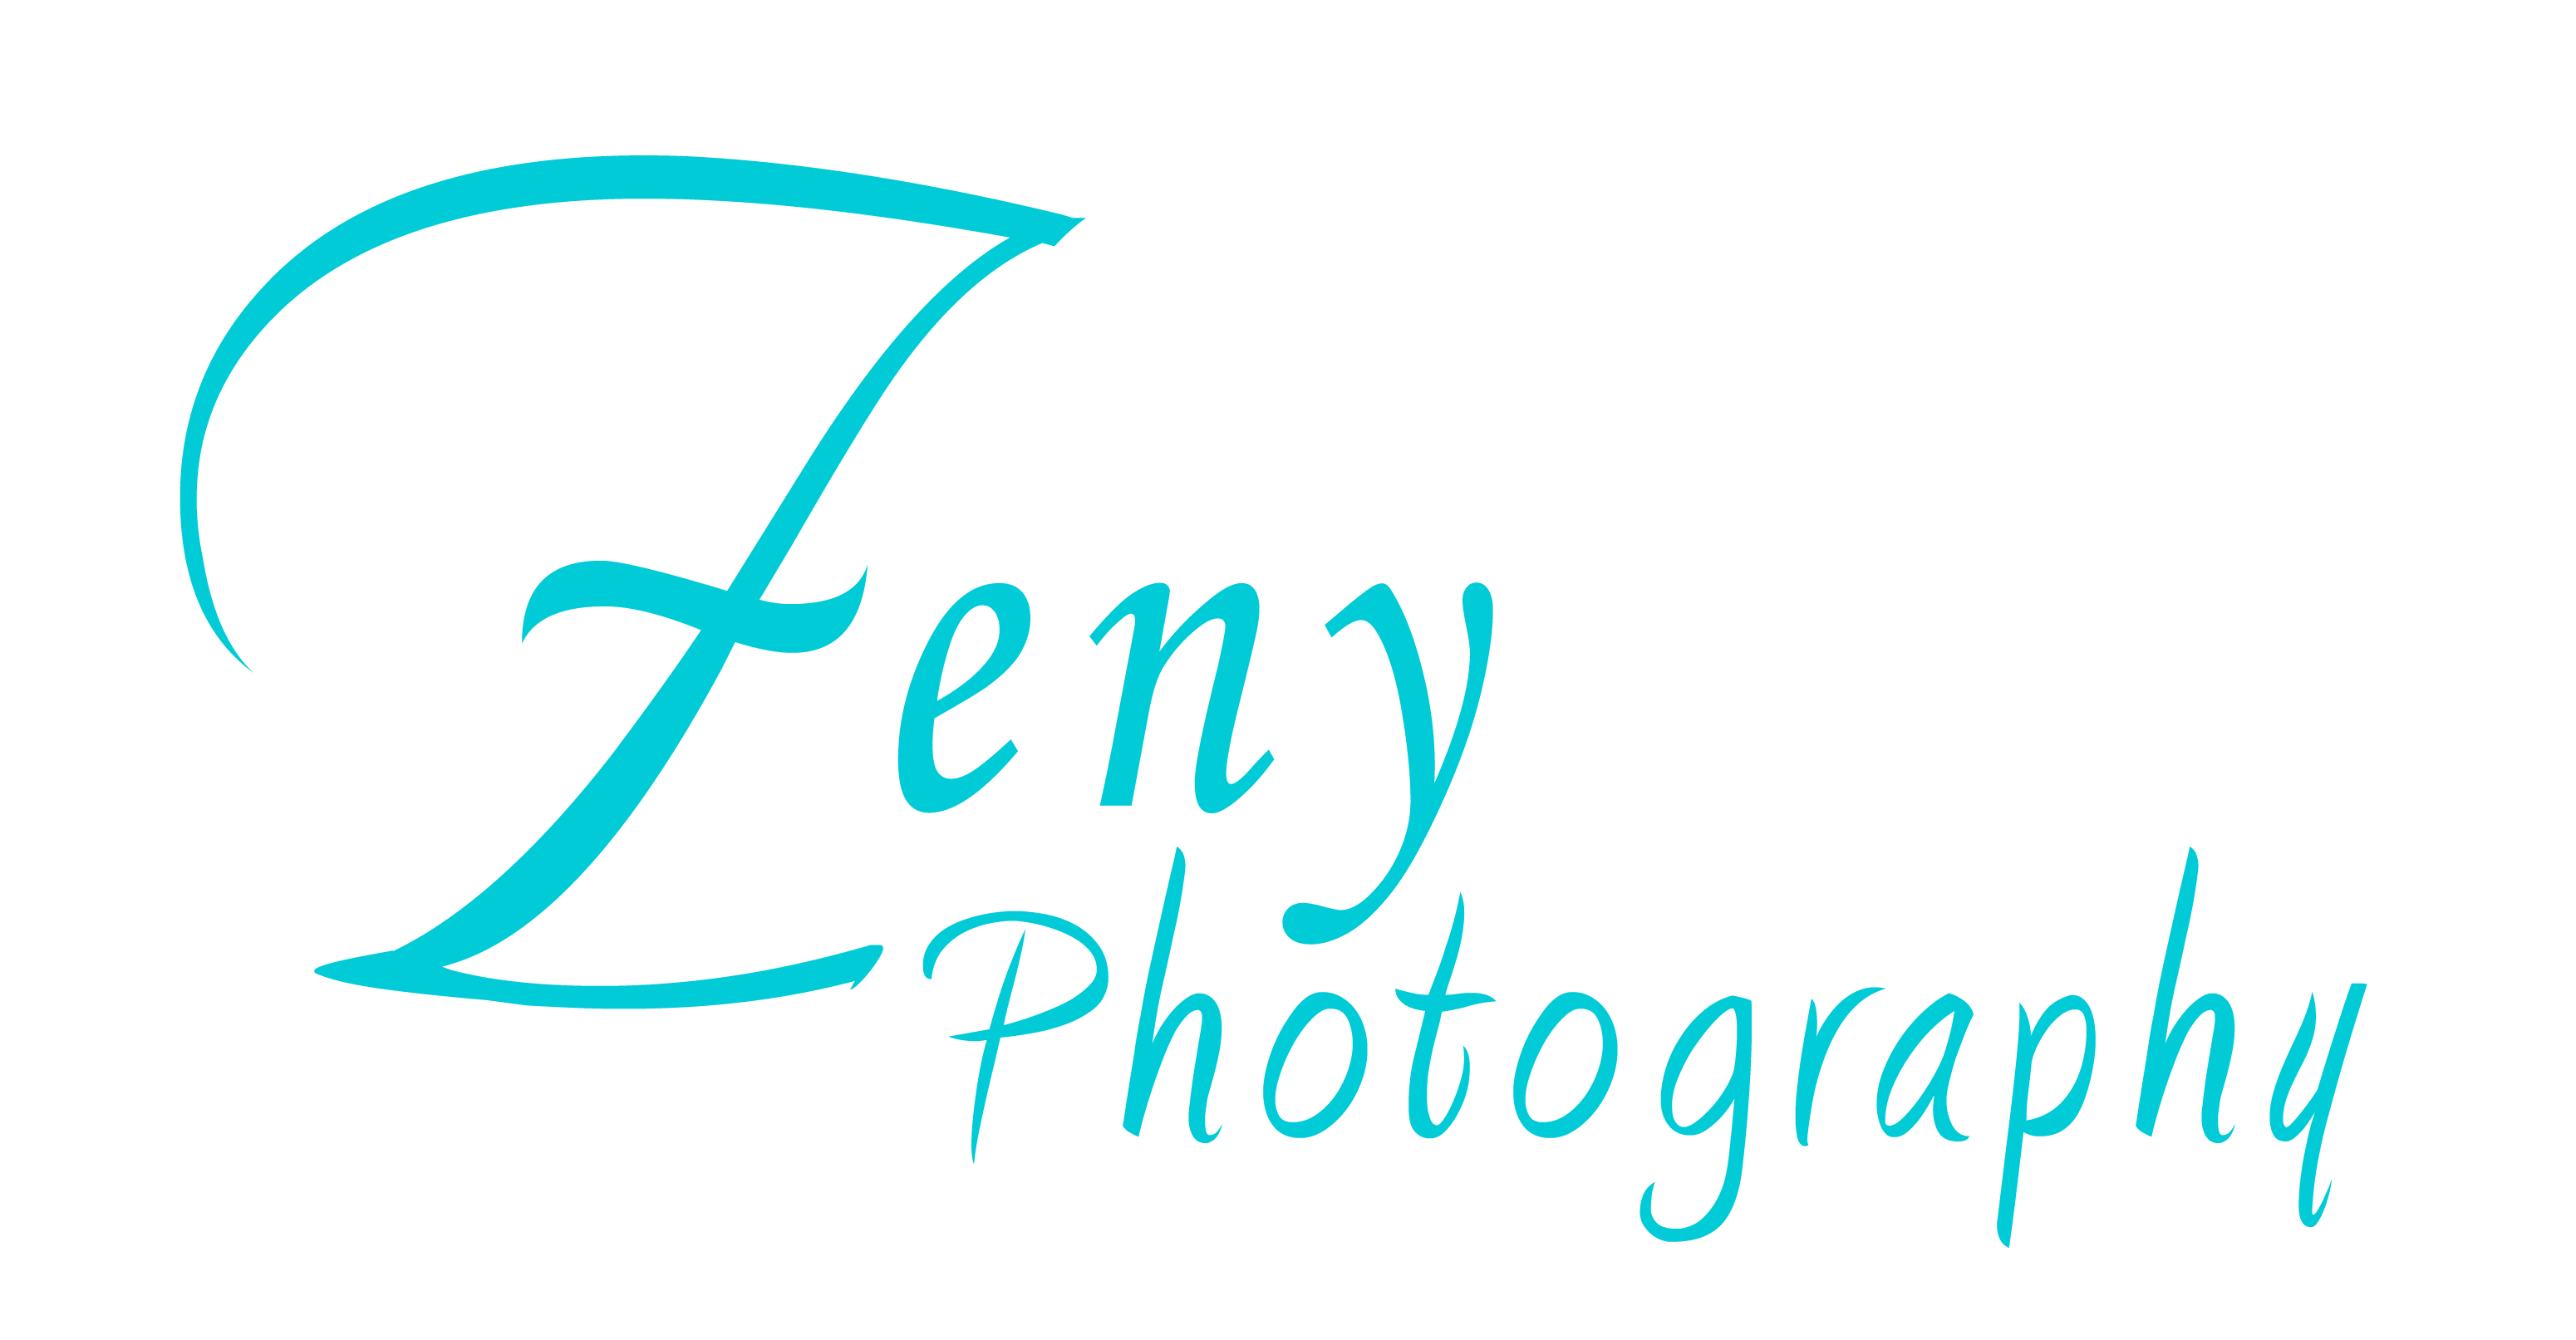 Zeny Photography